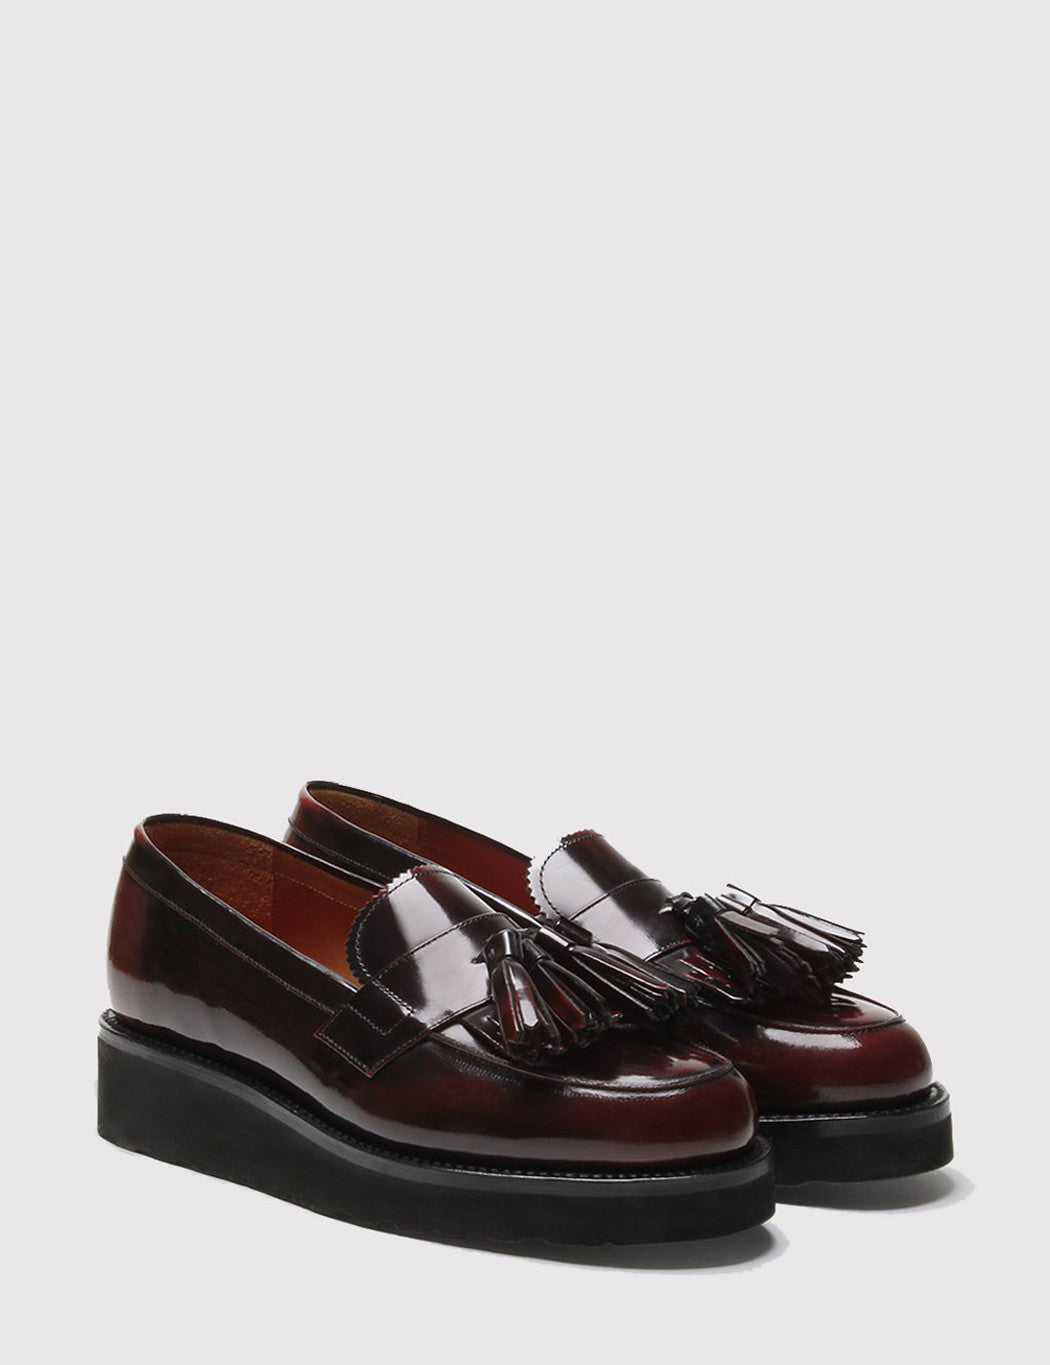 Grenson Womens Clara Loafer - Burgundy